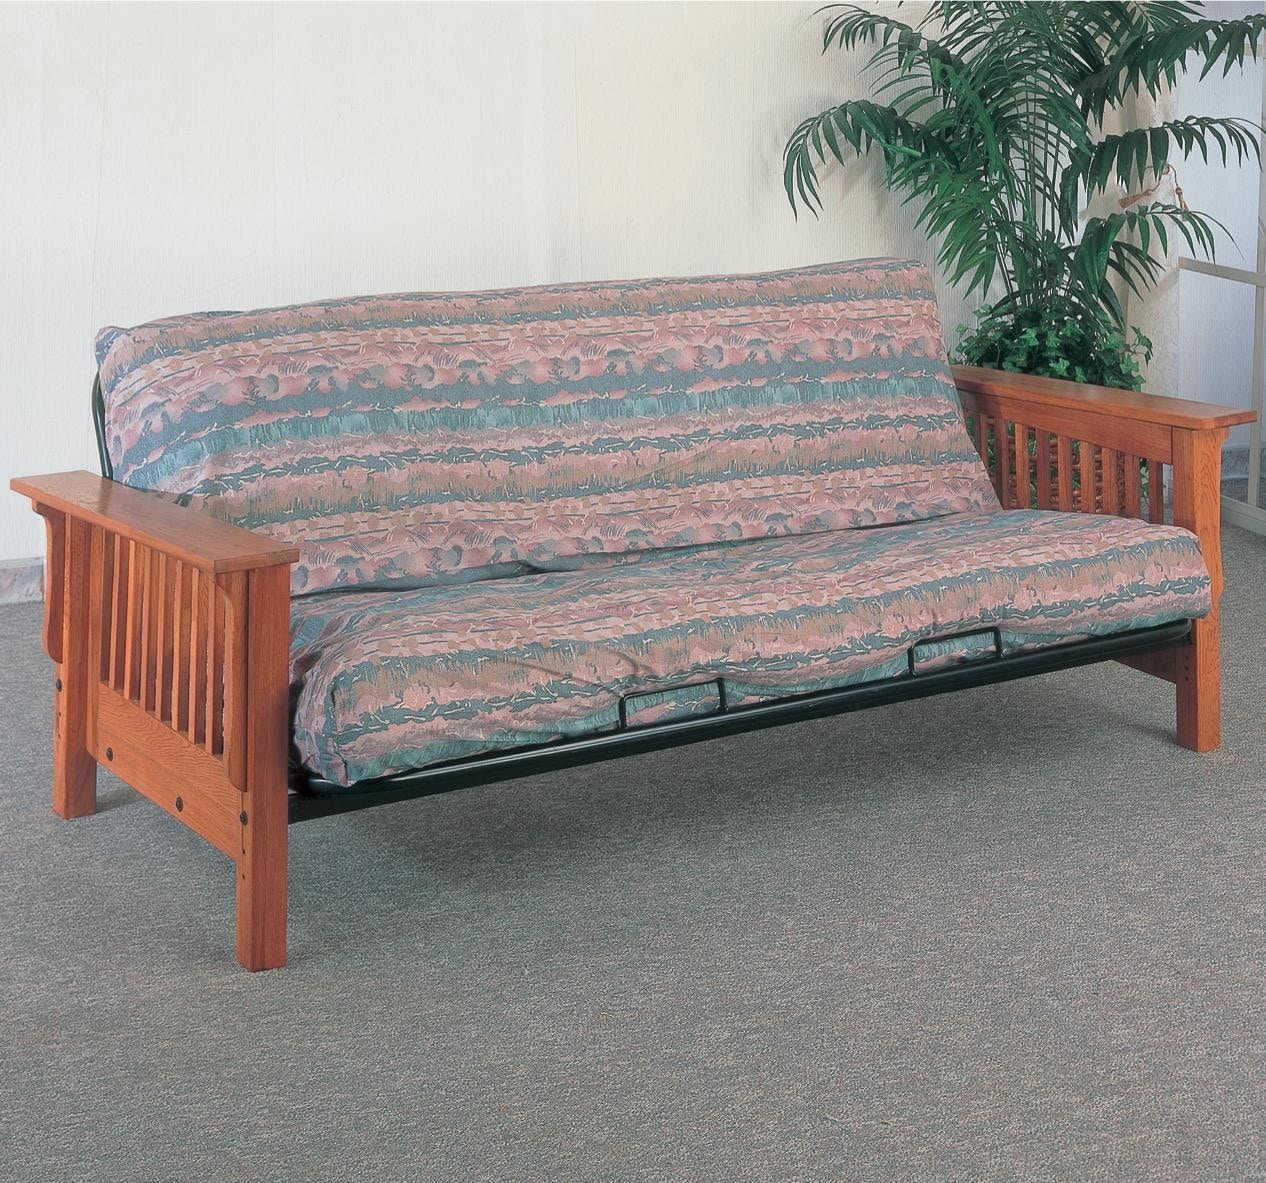 Delightful Fiore Furniture Altoona Pa #4: The Coaster Living Room Futon Frame Is Available In The Altoona, PA Area From Fiore Furniture ...